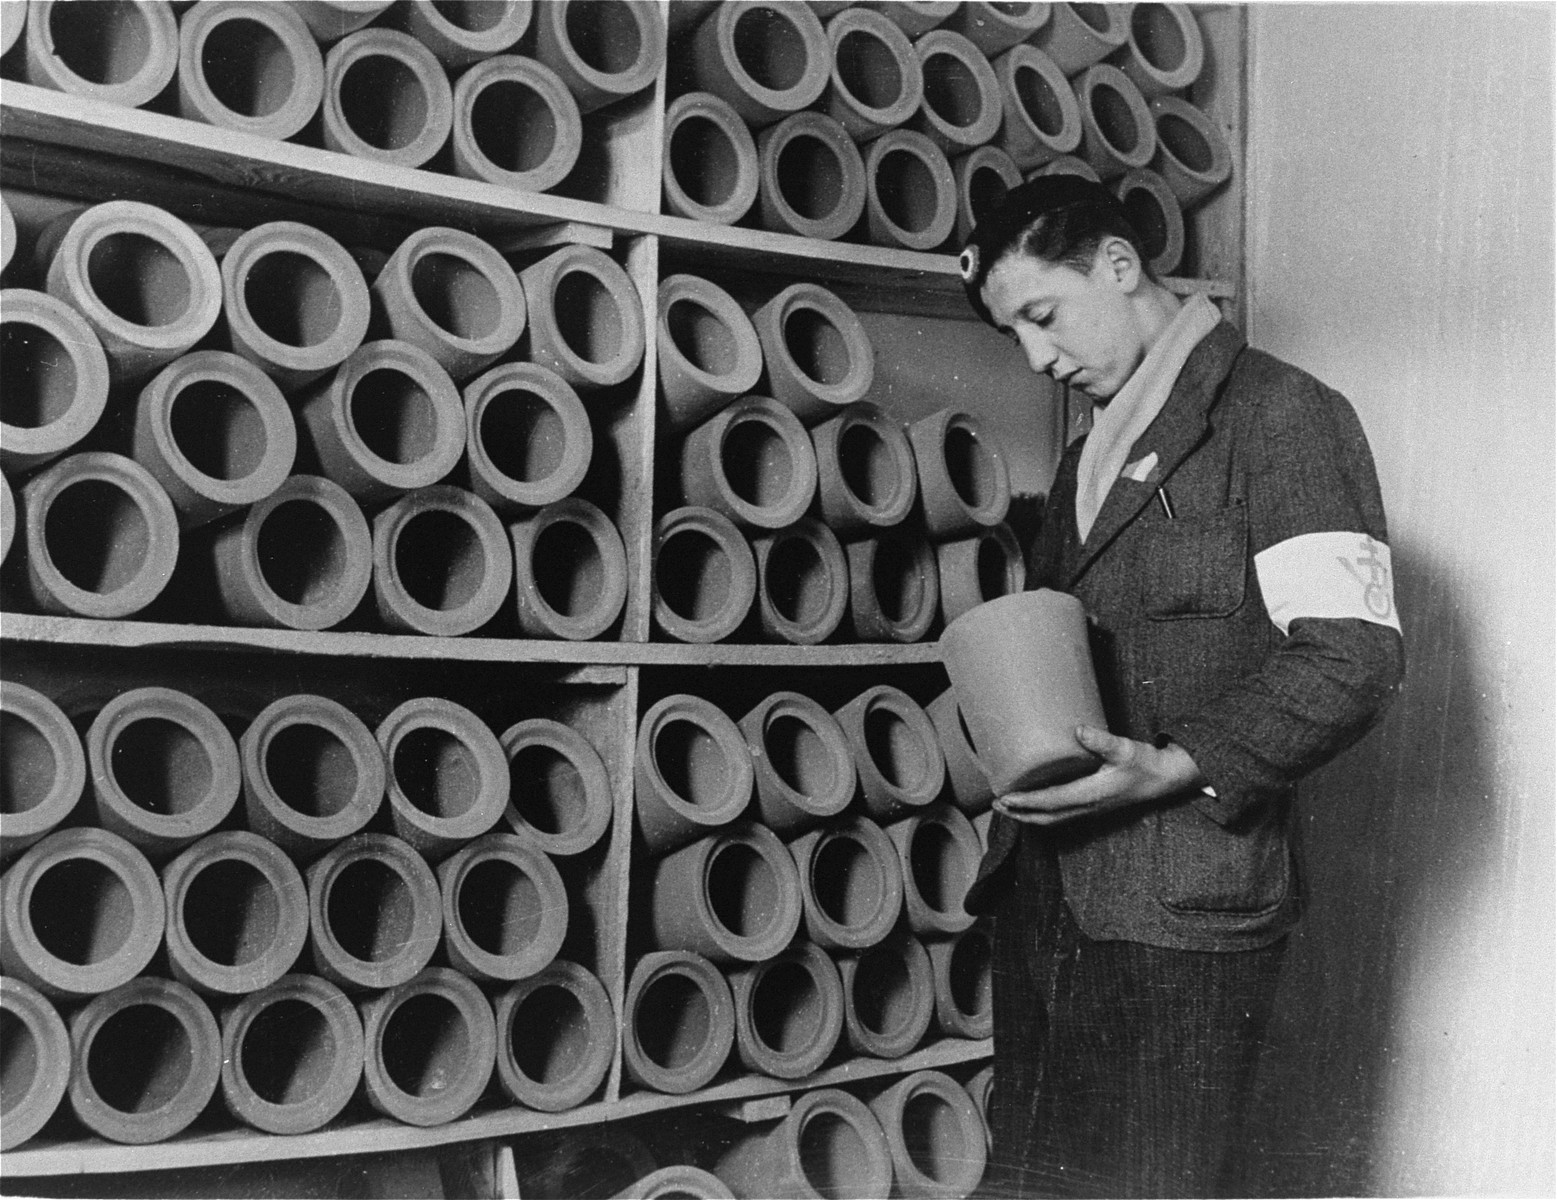 A member of the French resistance examines urns used to bury prisoners' cremated remains in Natzweiler-Struthof.